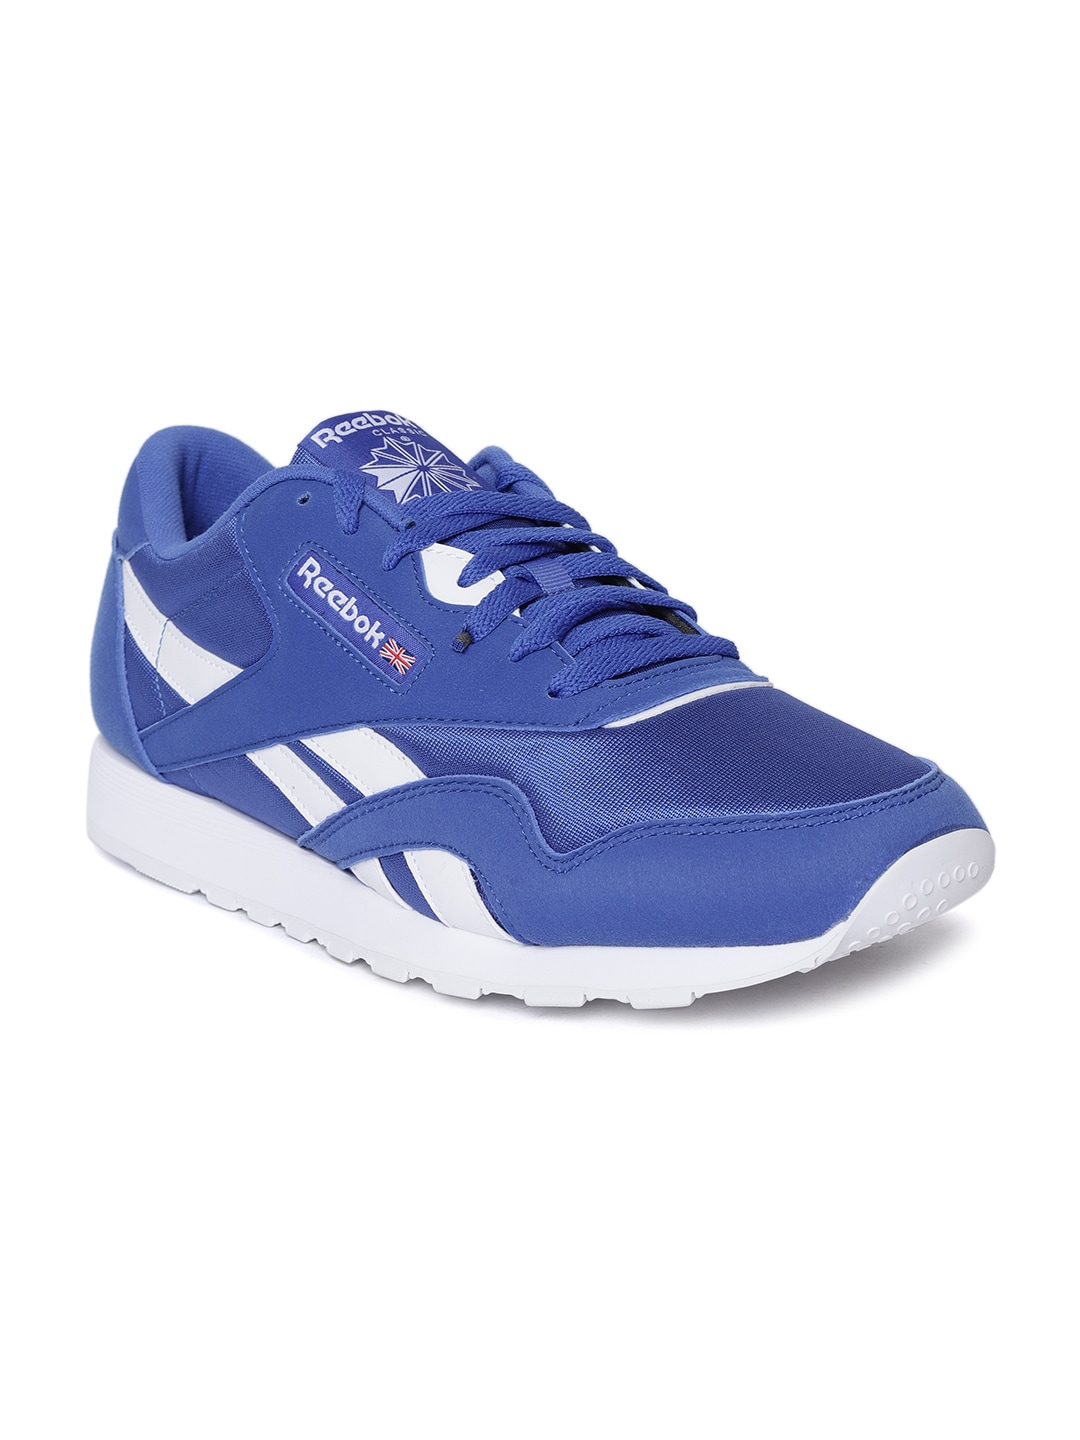 67835344d89 Reebok Classic Shoes - Buy Reebok Classic Shoes online in India